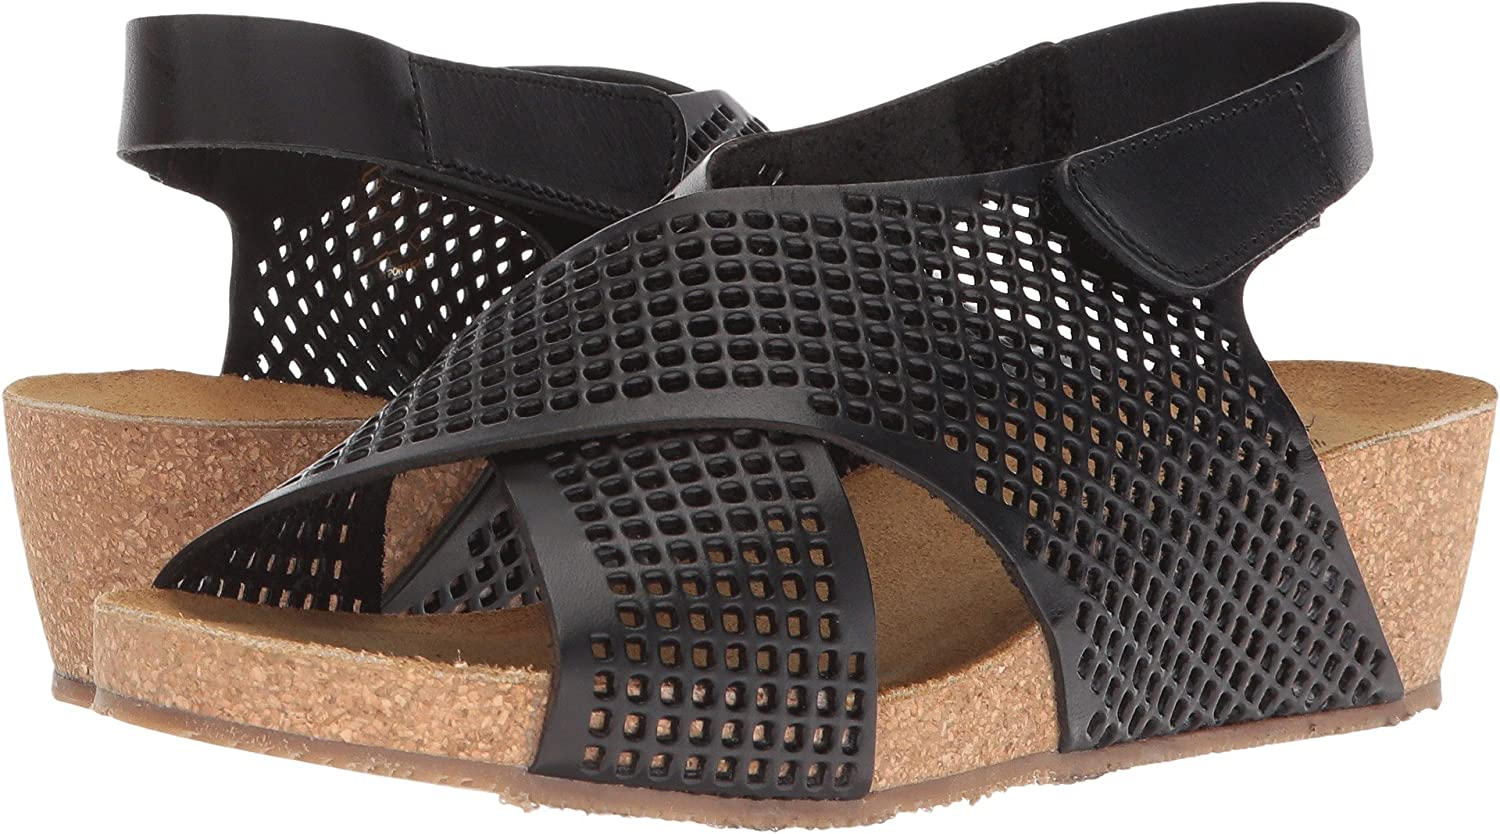 Eric Michael Womens August Wedge Sandal B076BYYMN6 39 M EU|Black